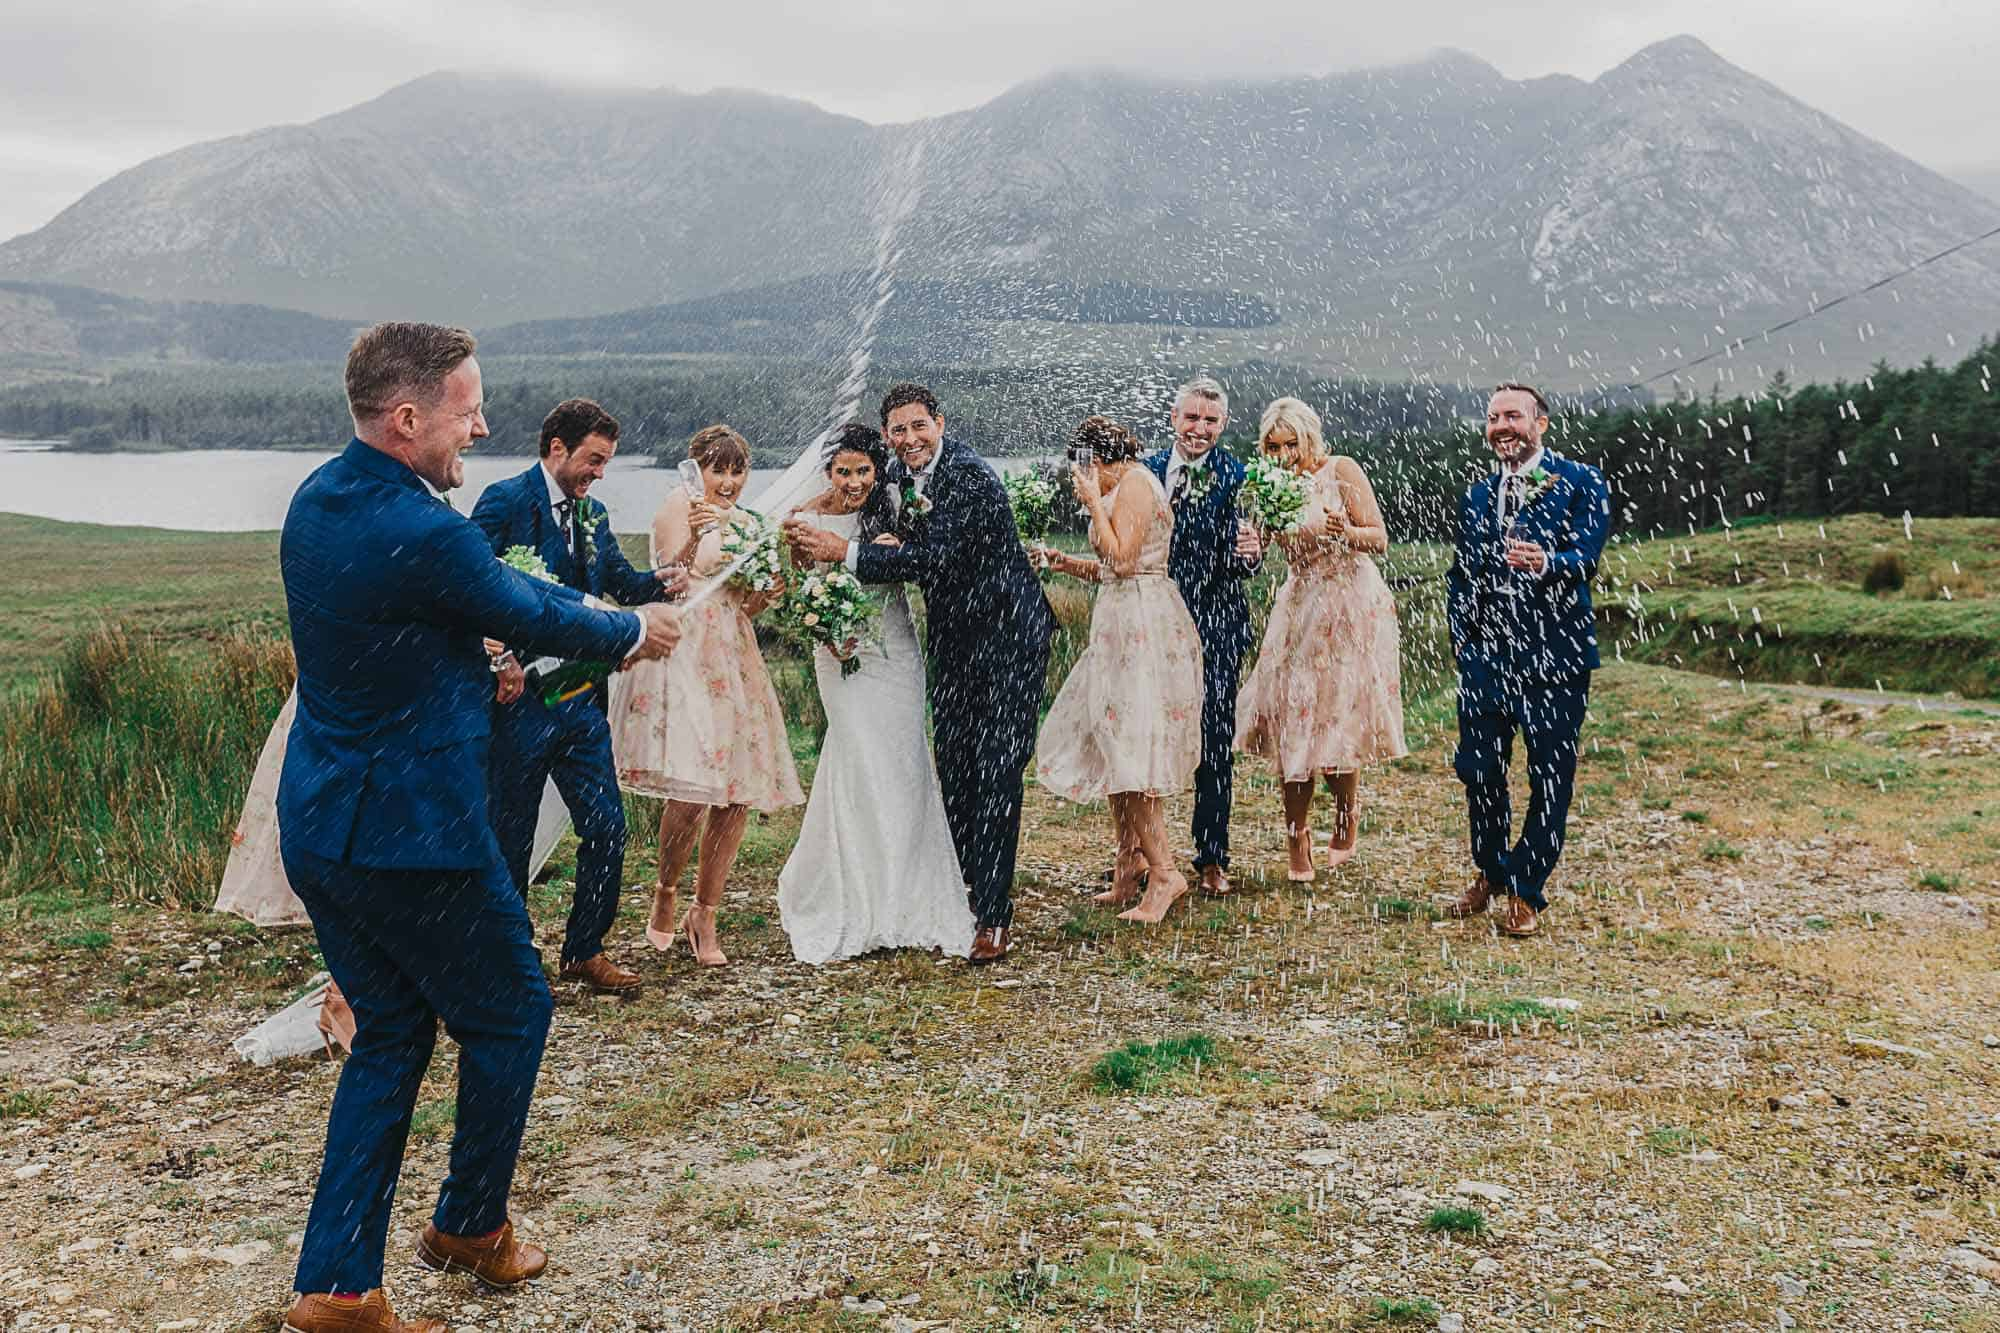 Elopement Planner Ireland Bubbles, popping champagne with the bridal party. What is eloping?